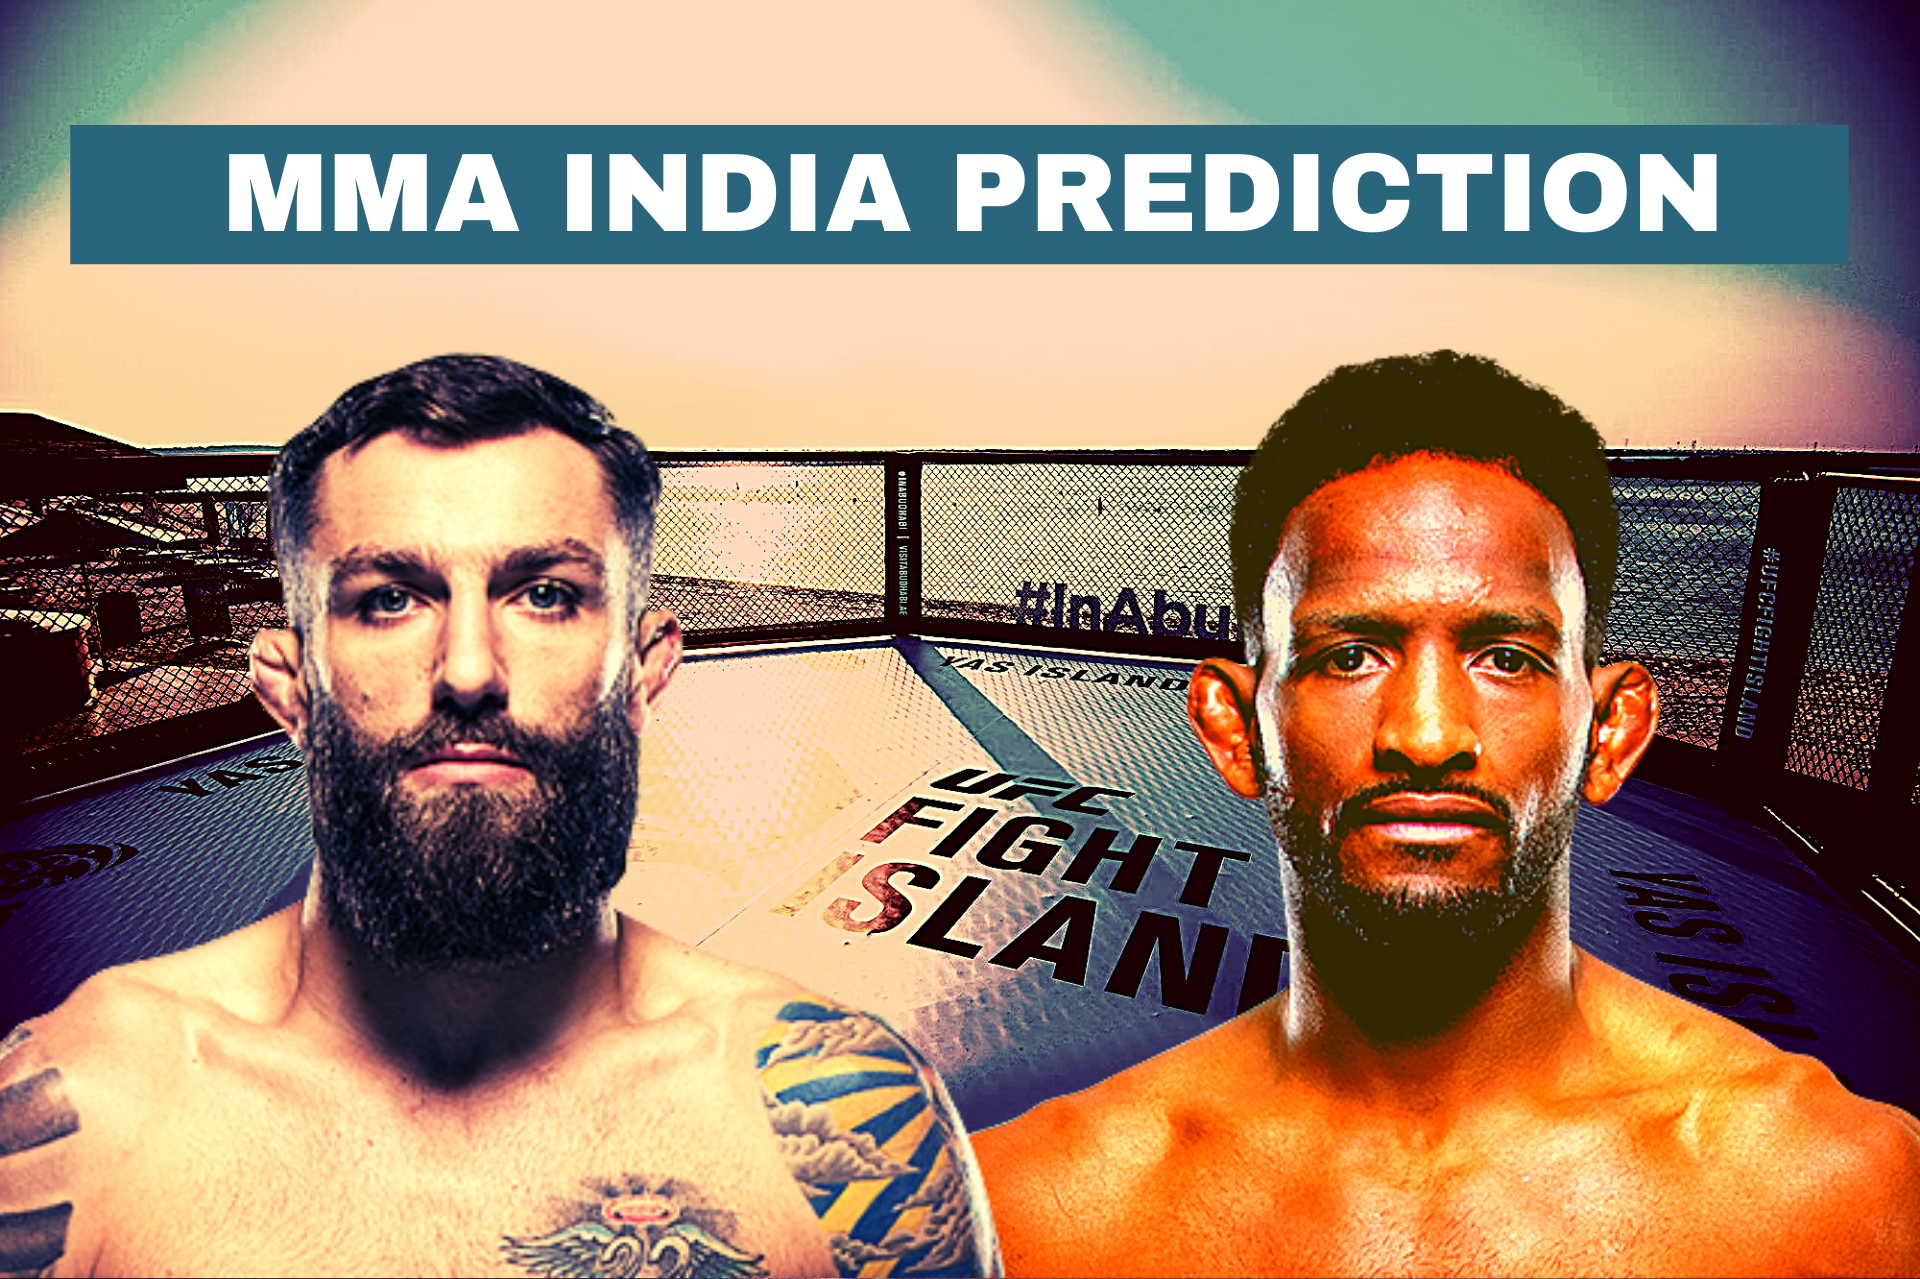 UFC Fight Island 8: Chiesa vs Magny Betting Odds and Predictions - Magny